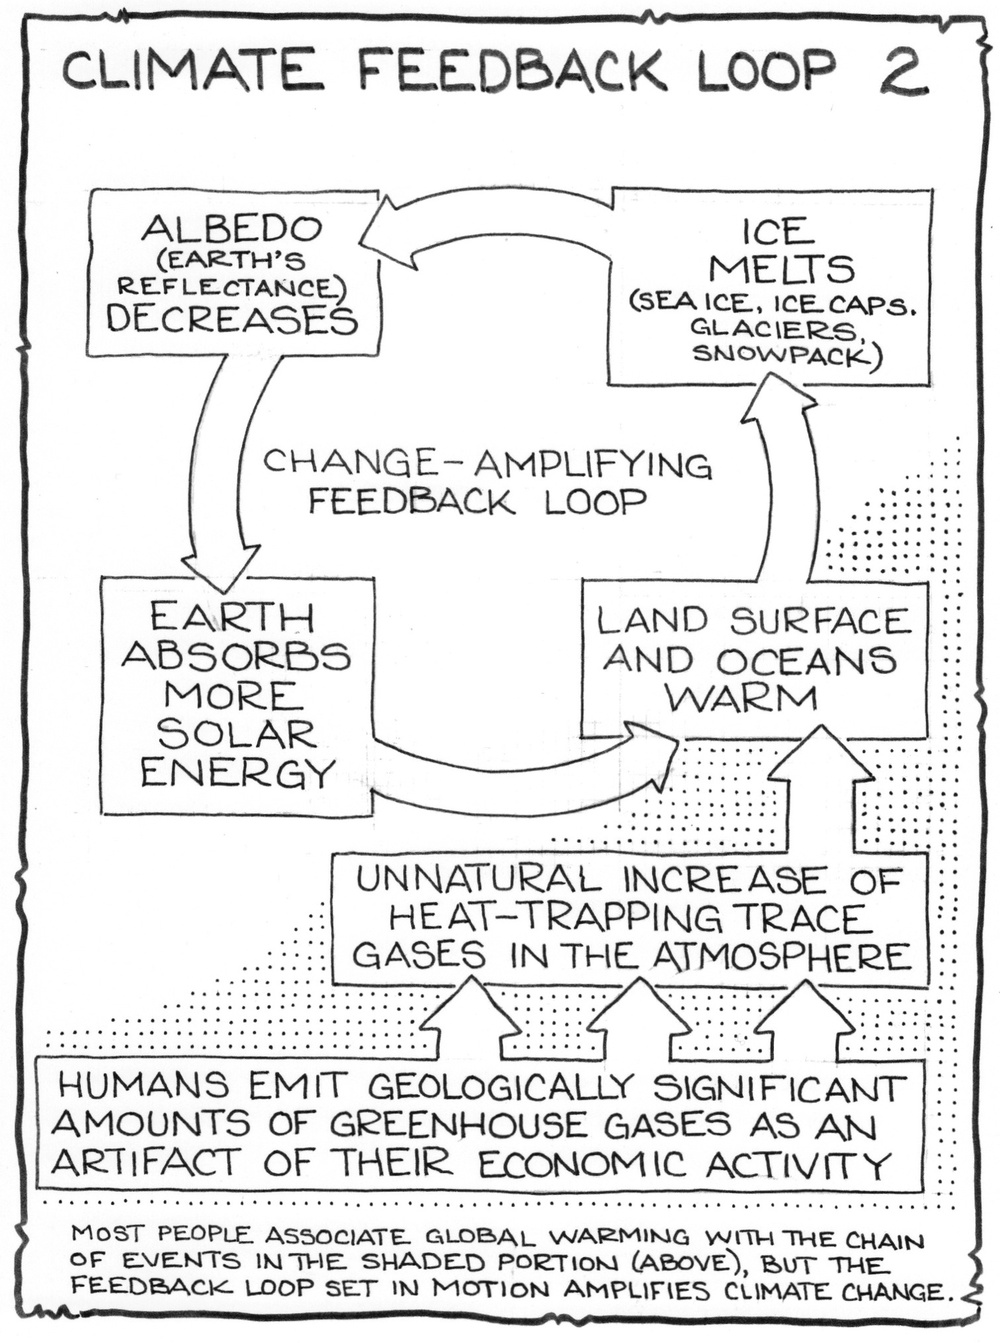 Ice/Albedo Feedback Loop Diagram by Fred Montague.  © 2012